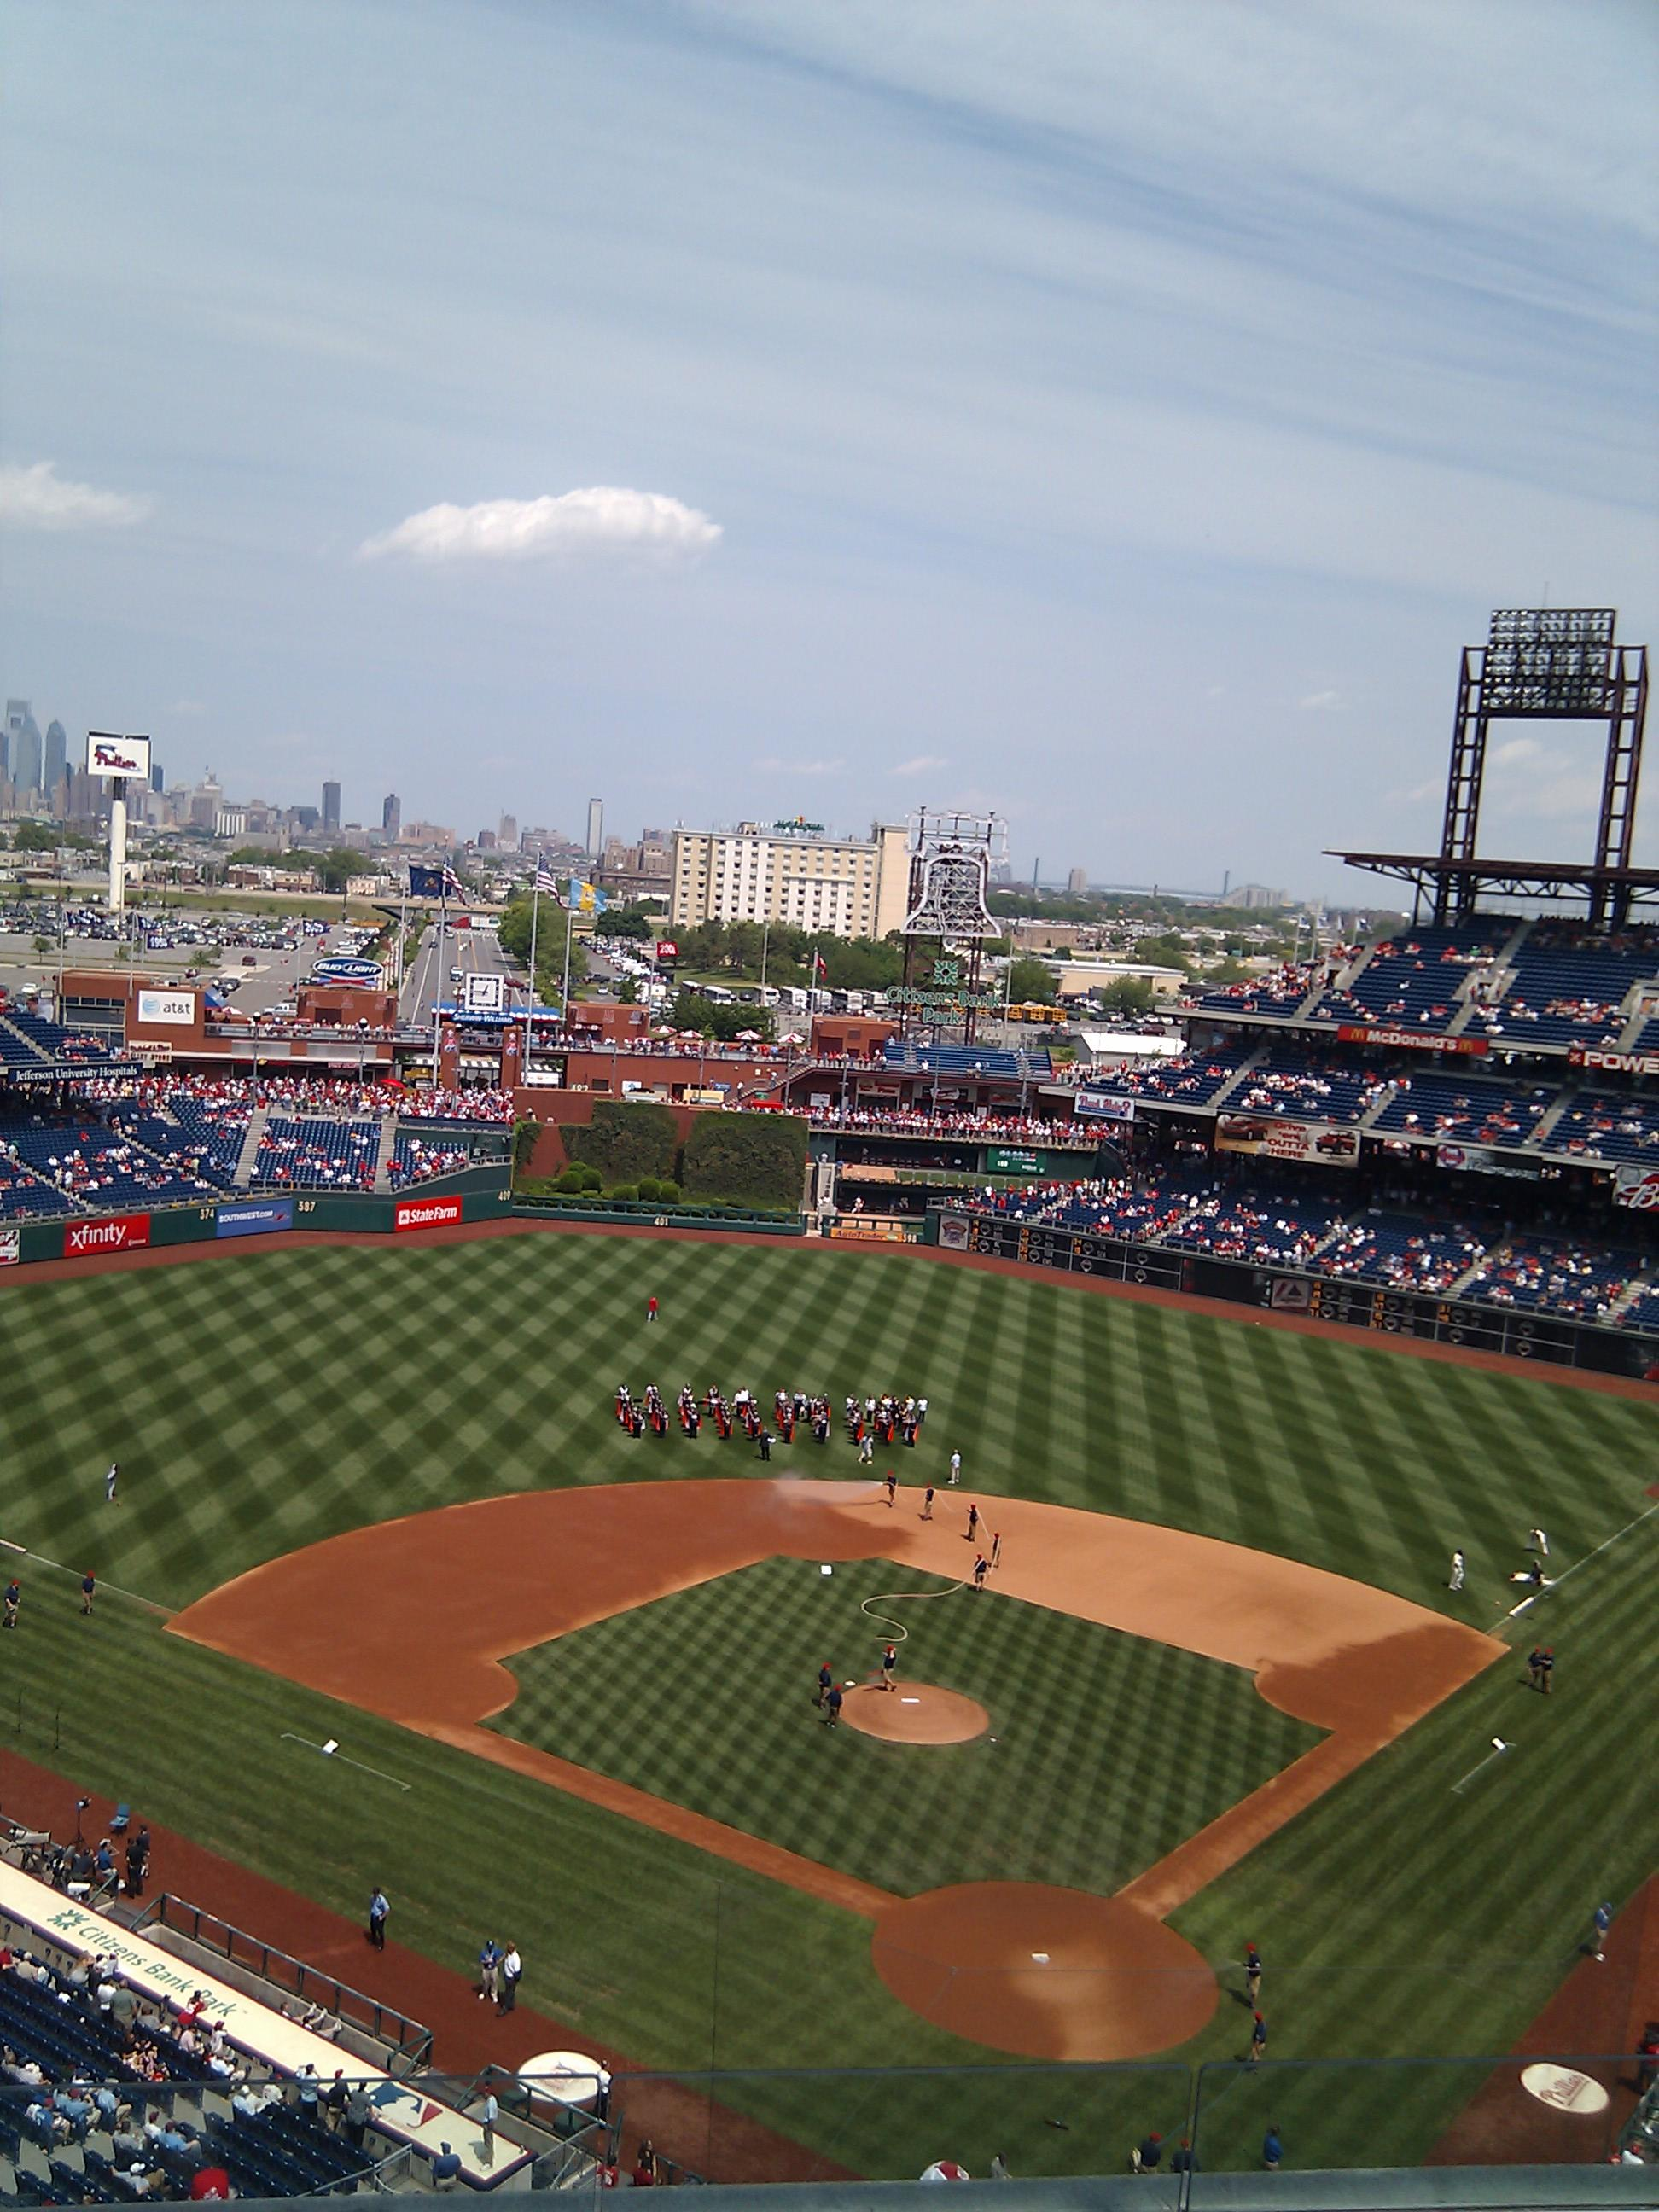 Citizens Bank Park Section 422 Row 6 Seat 11